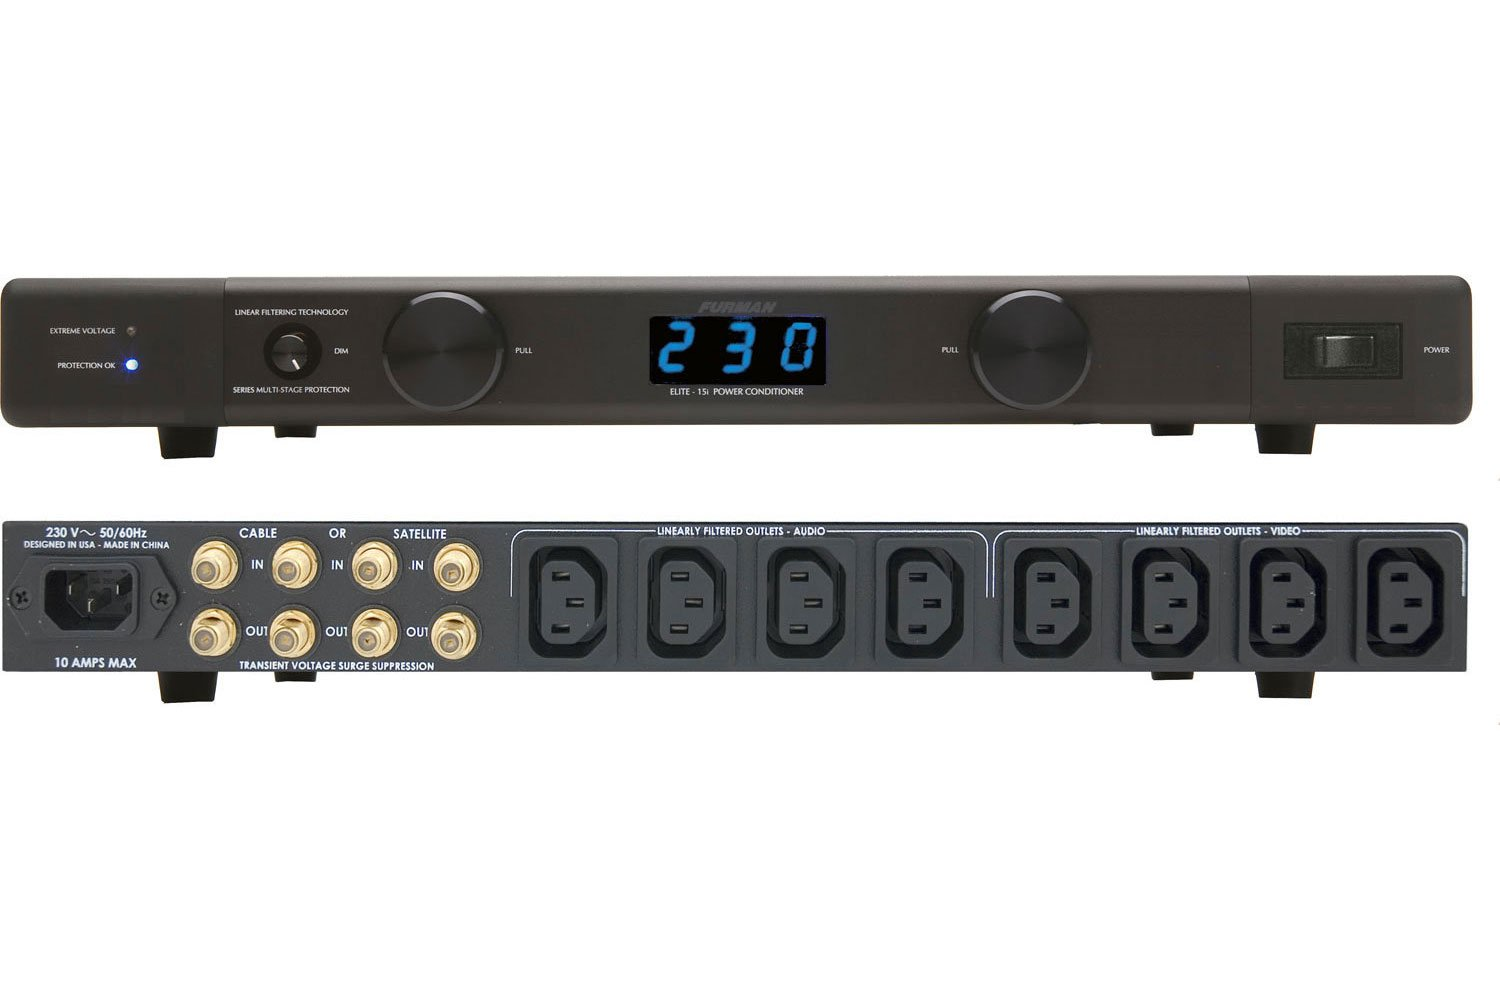 Furman ELITE-10 E I 10A Home Theater Power Conditioner, 230V by Furman